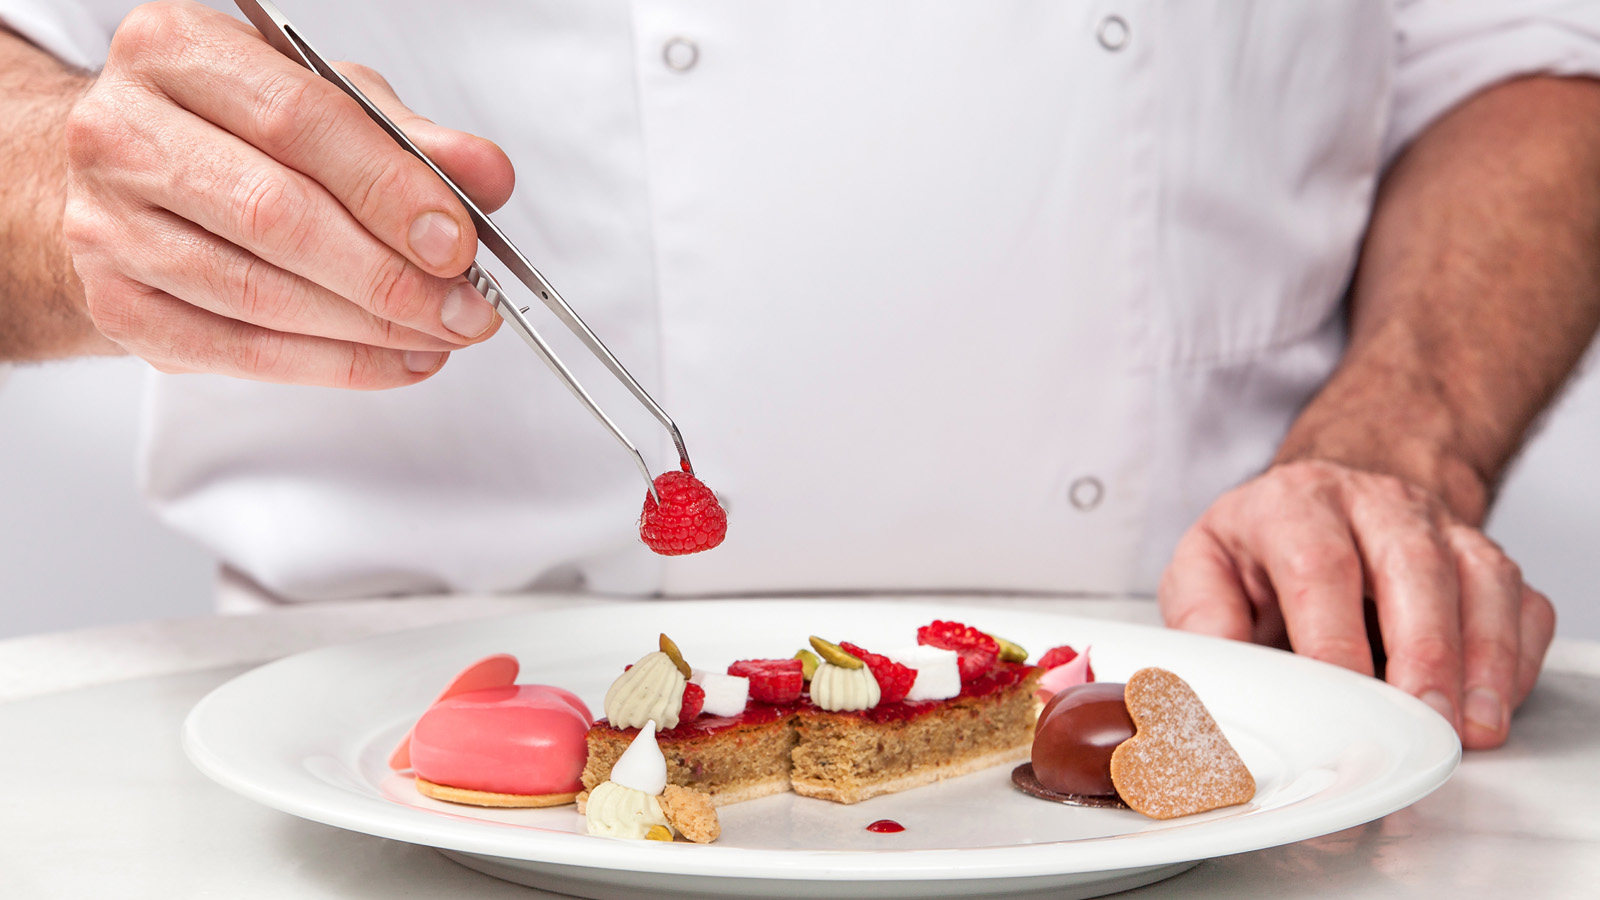 Four Seasons Hotel Beirut Brings Its Culinary Creativity and World Class  Service to Your Location